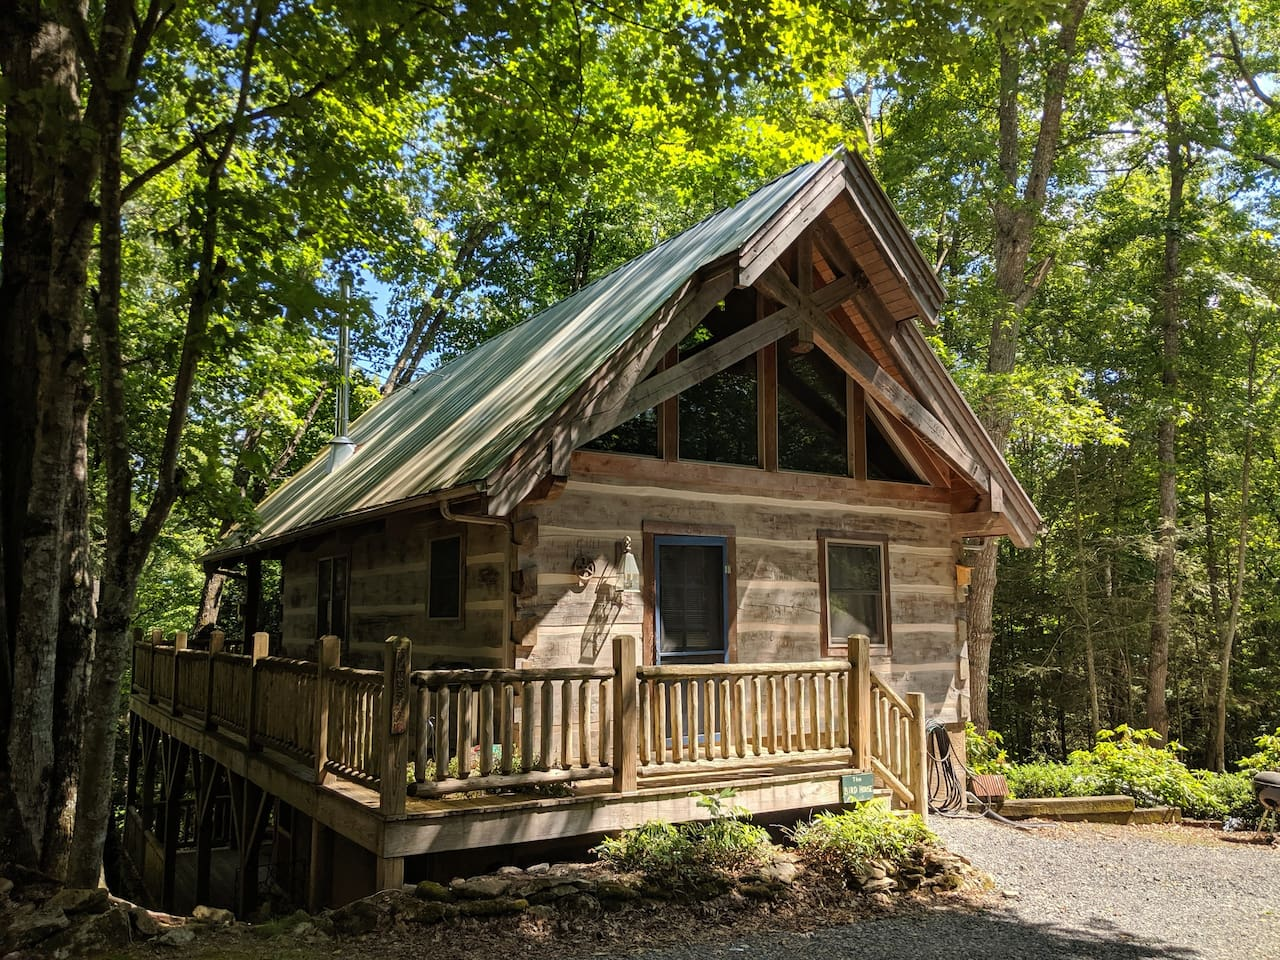 Wrap around porch, to back side of cabin.